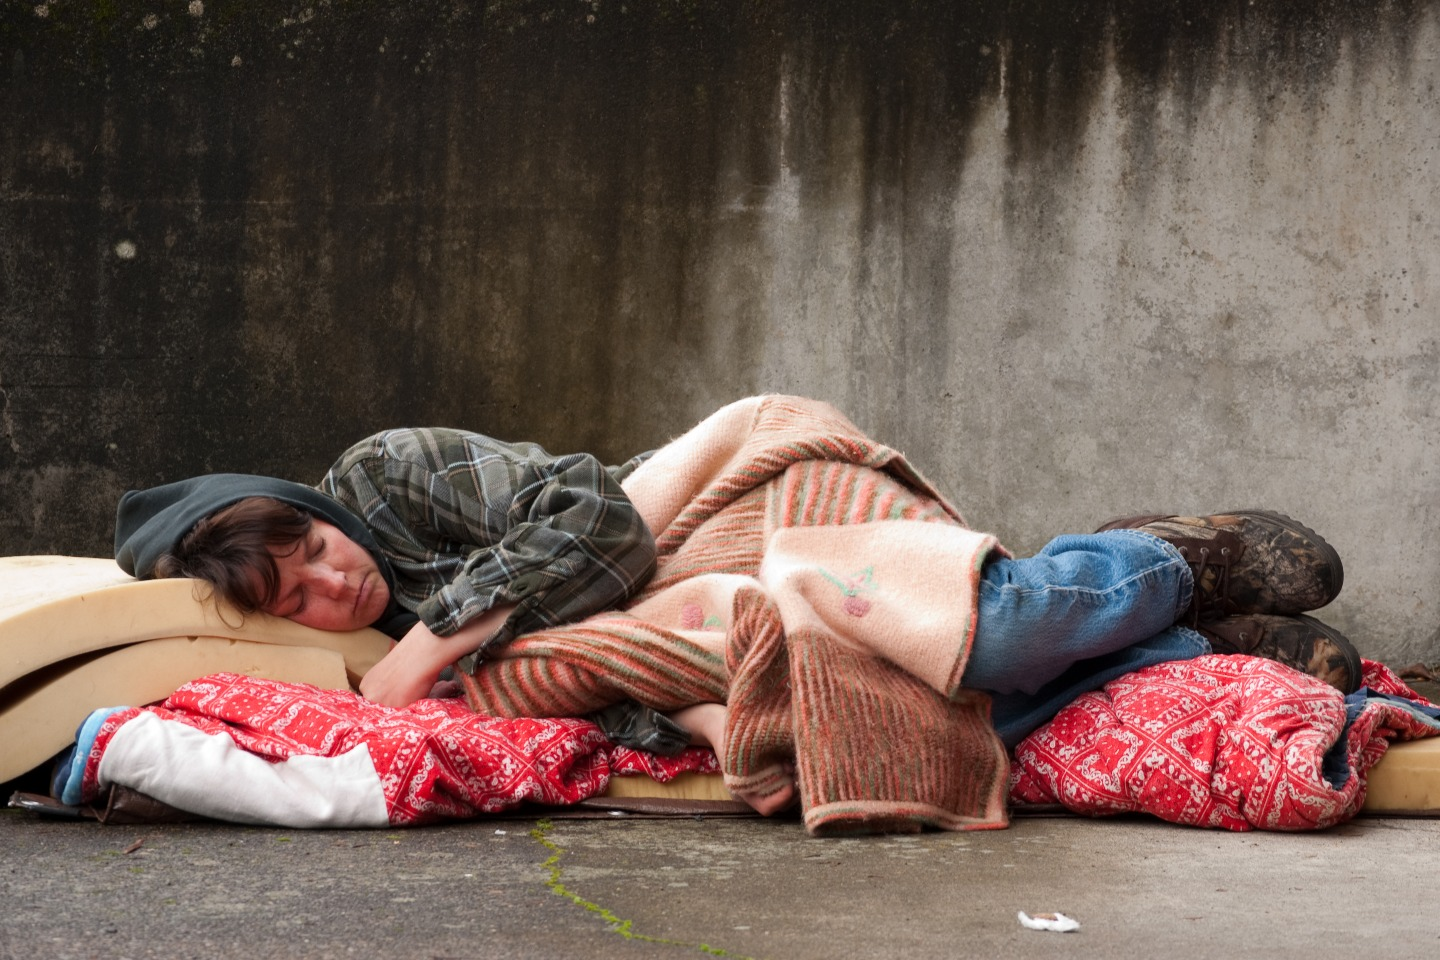 Sleeping on a street